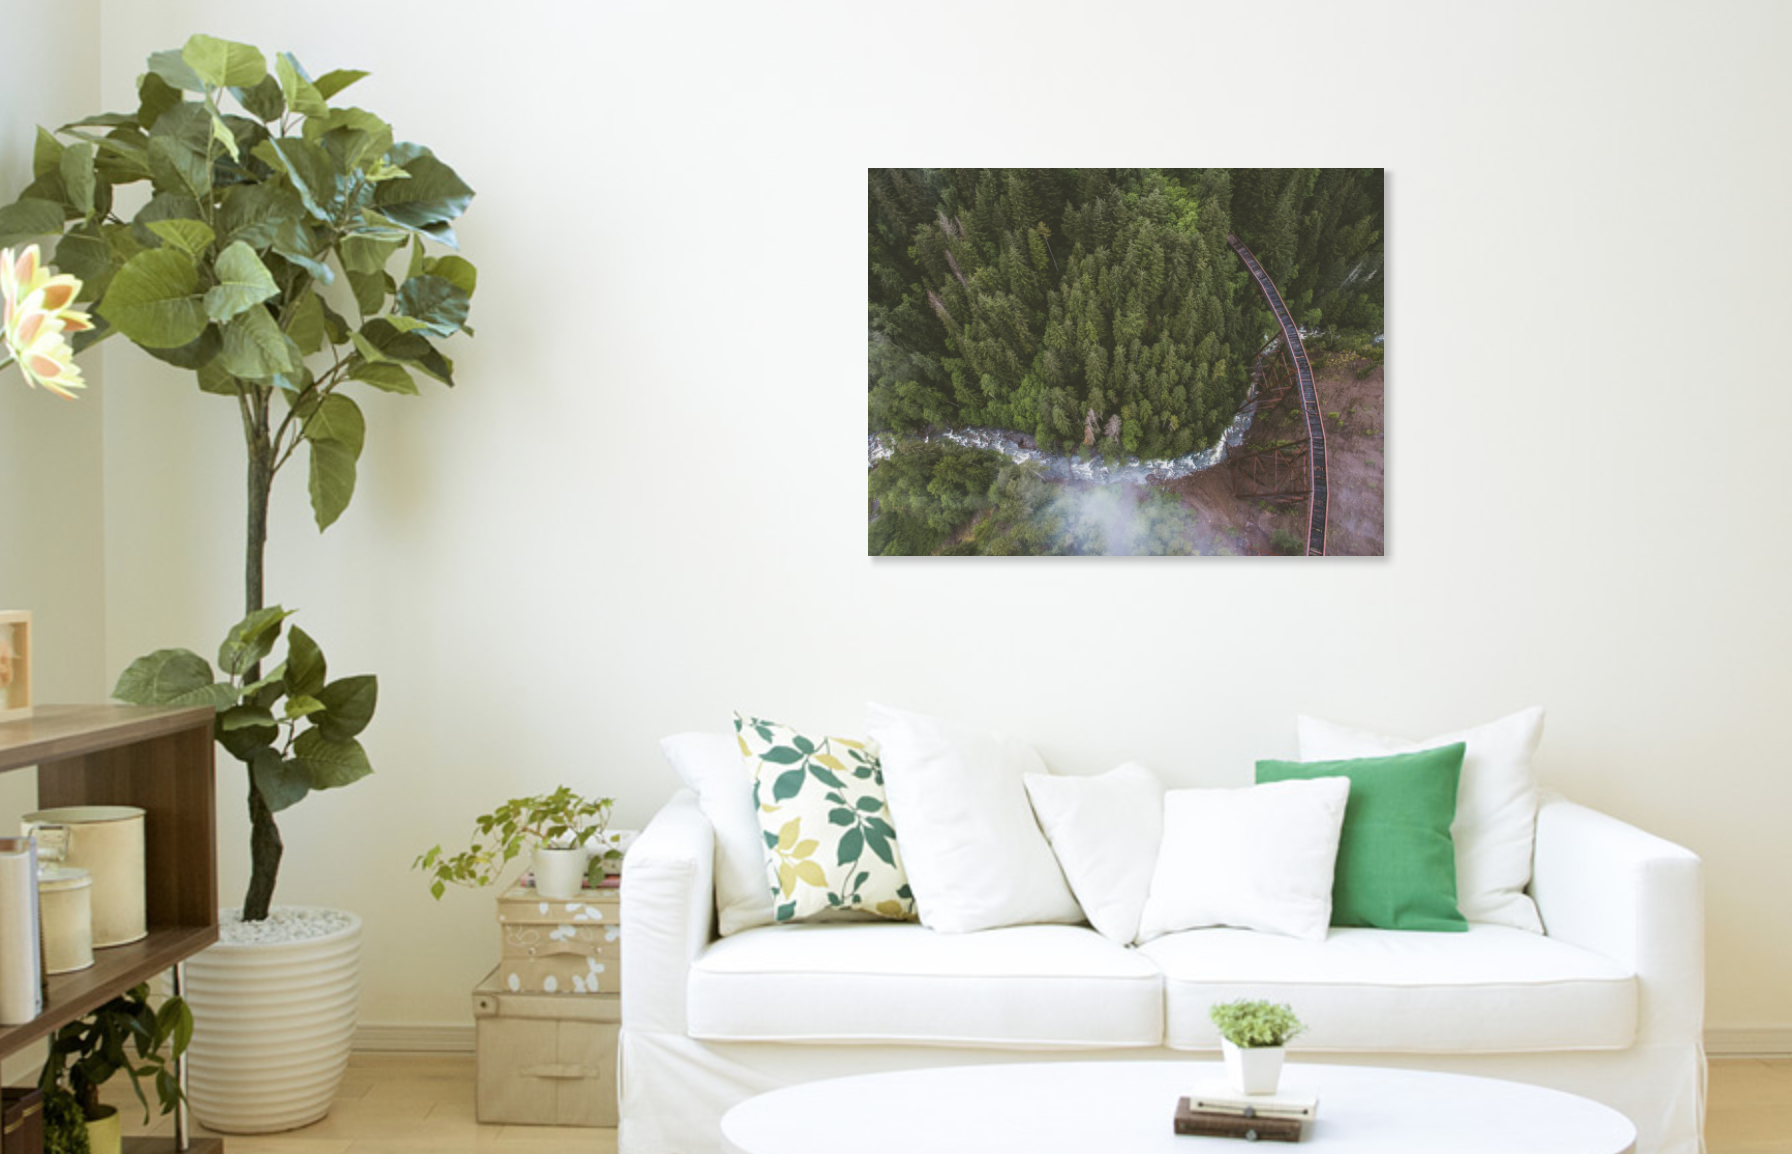 Art Prints. - Available in stretched canvas and premium luster photo paper.